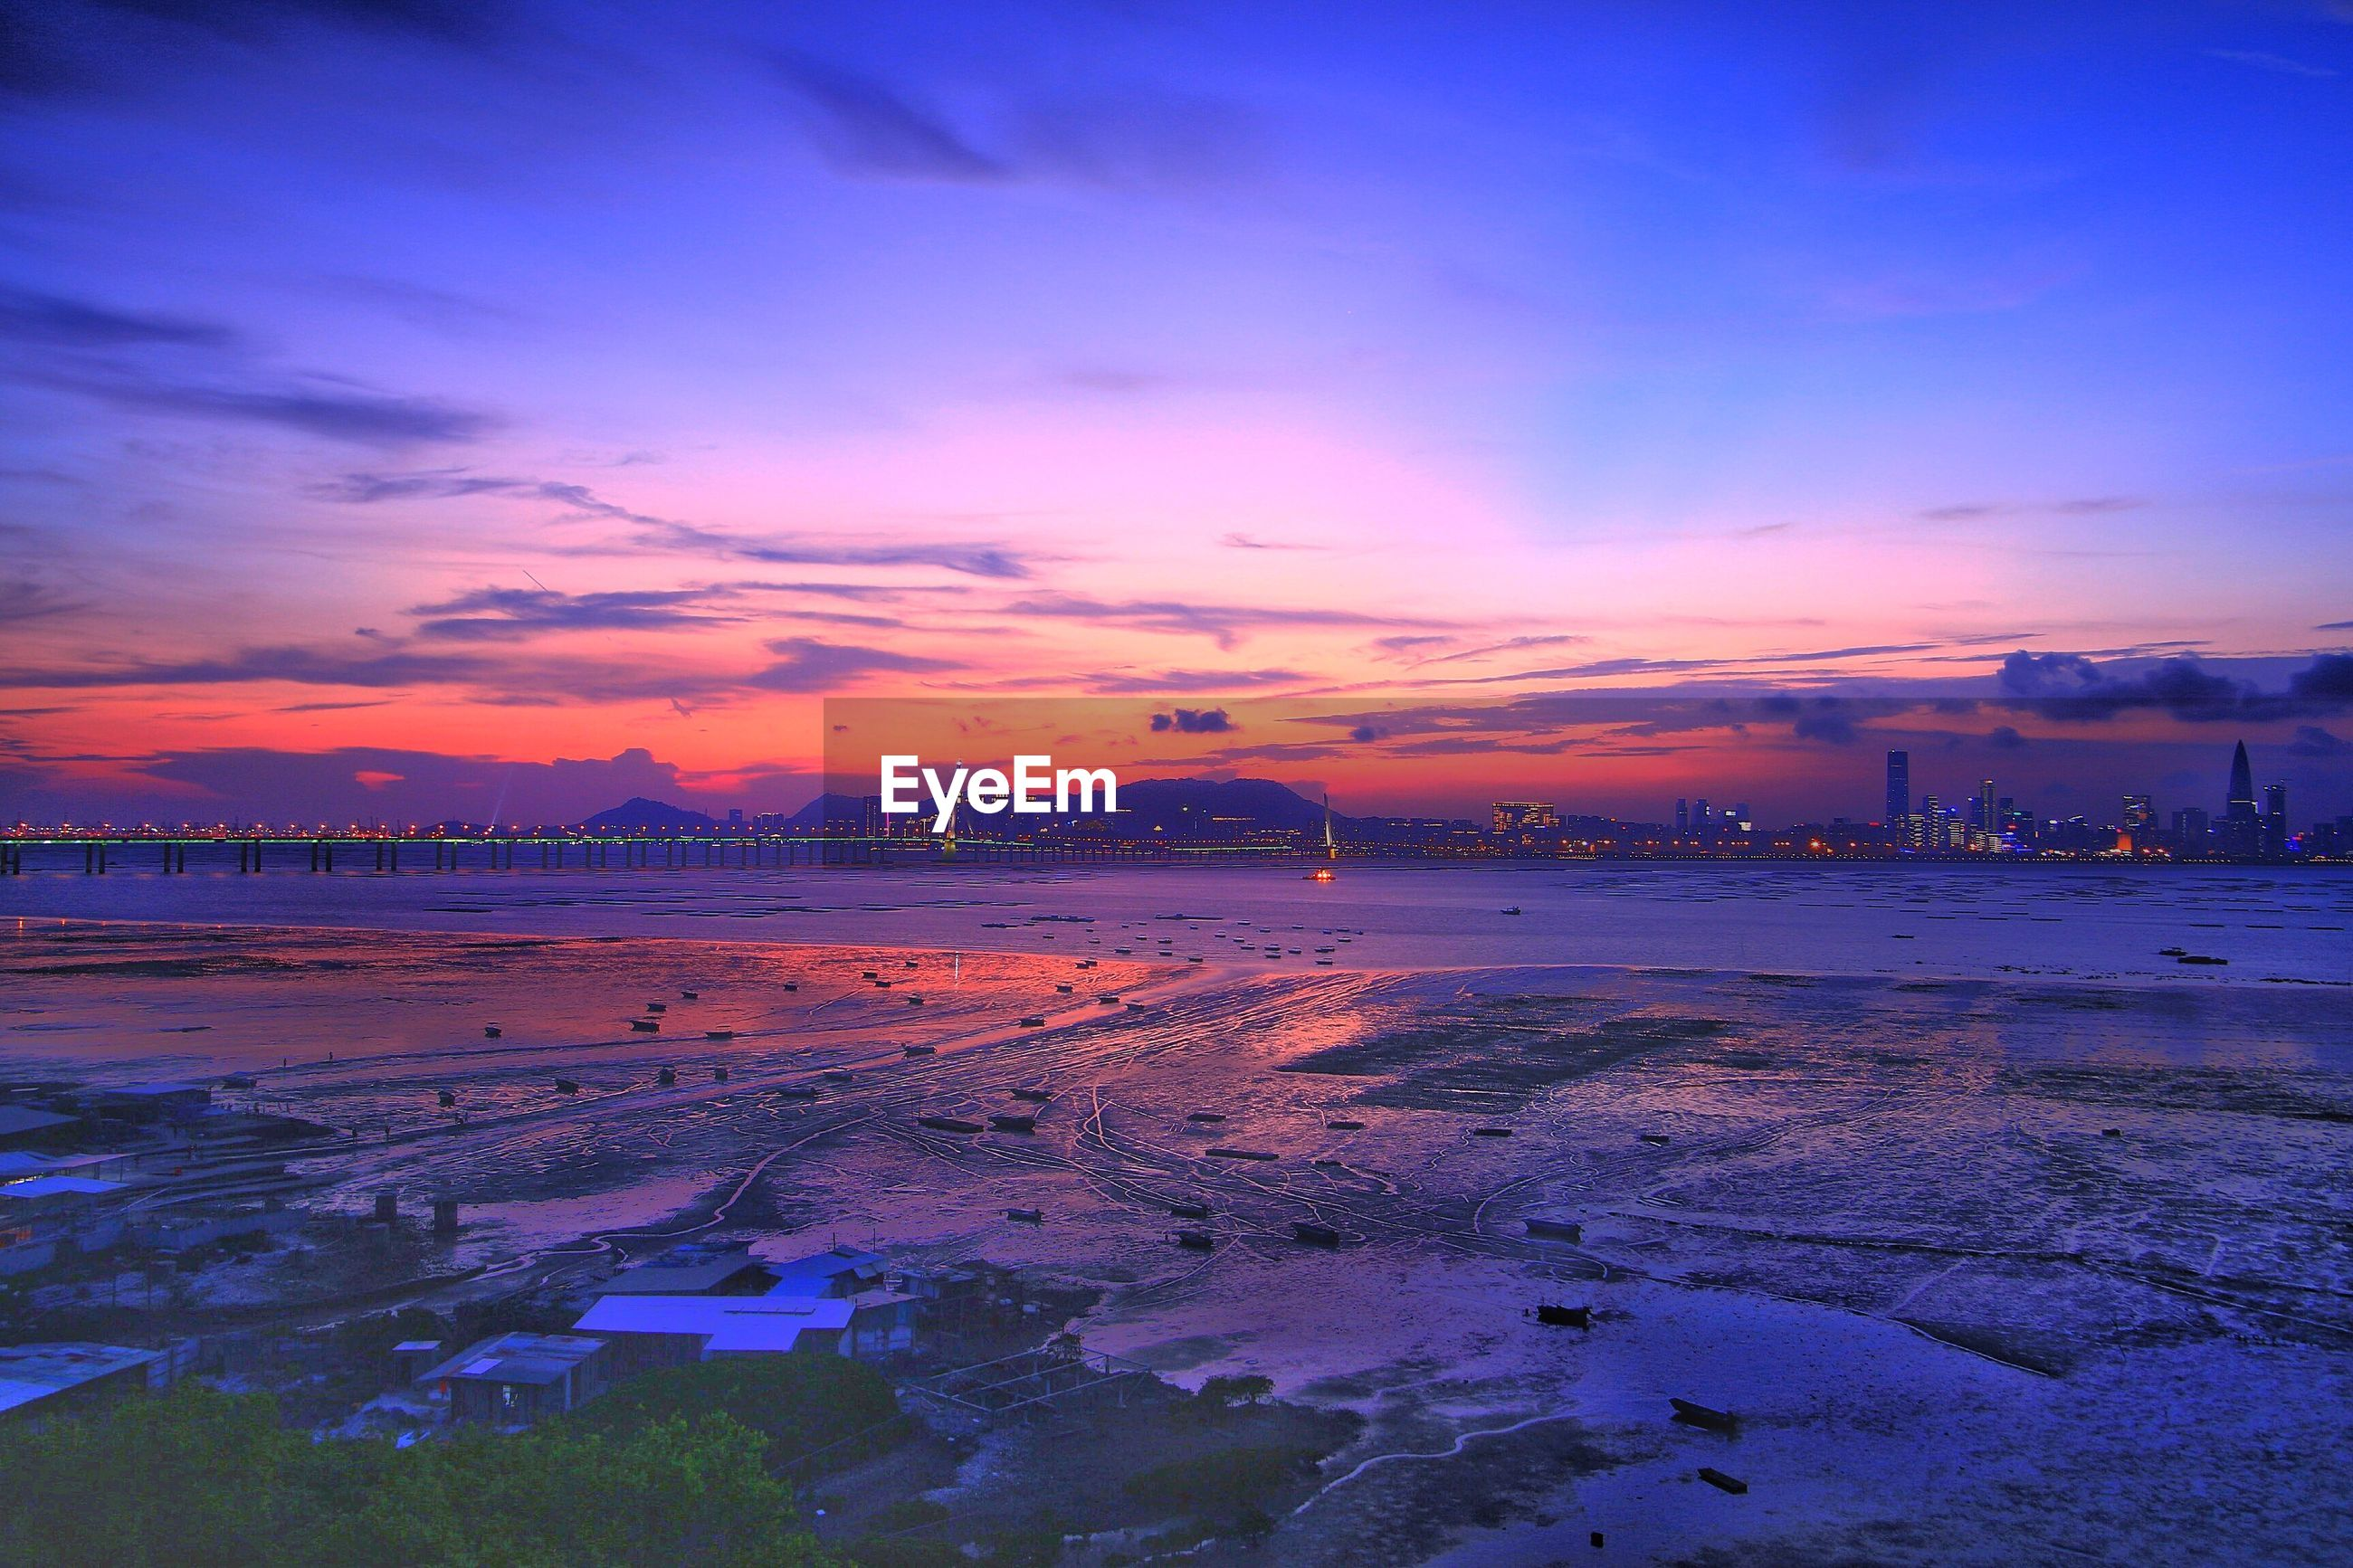 Scenic view of sea and city against romantic sky at sunset